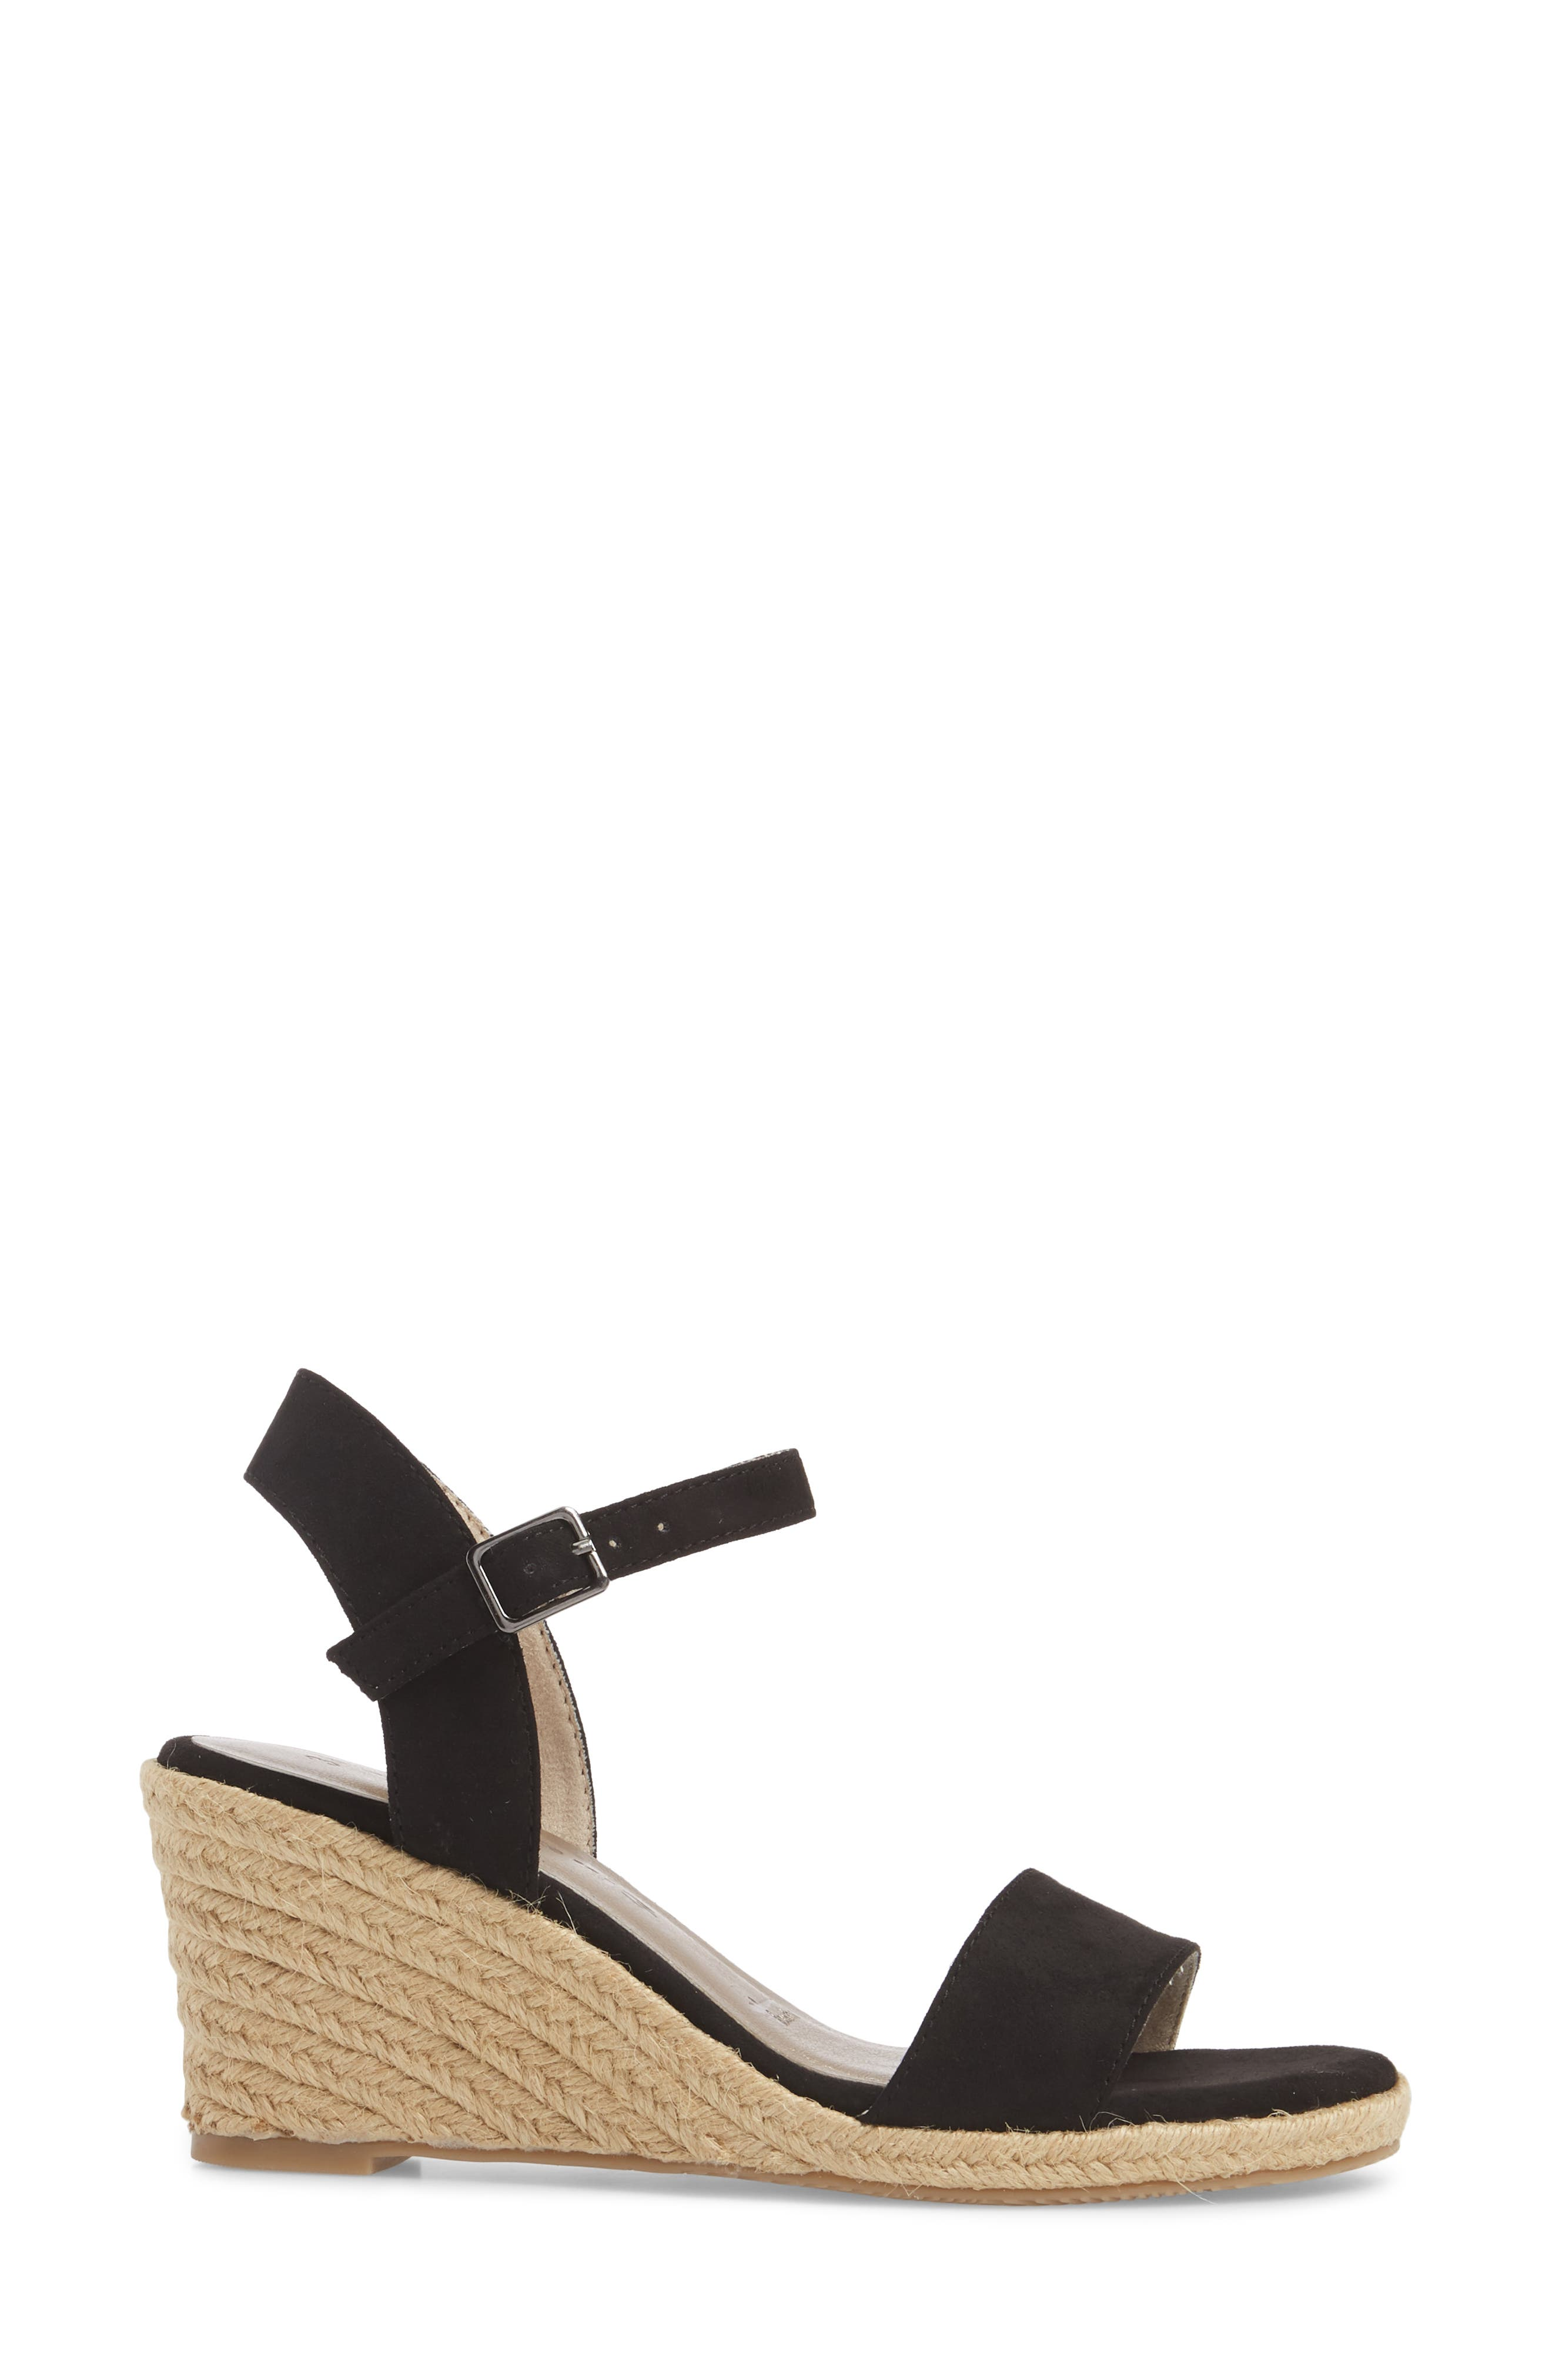 TAMARIS,                             Livia Espadrille Wedge Sandal,                             Alternate thumbnail 3, color,                             002